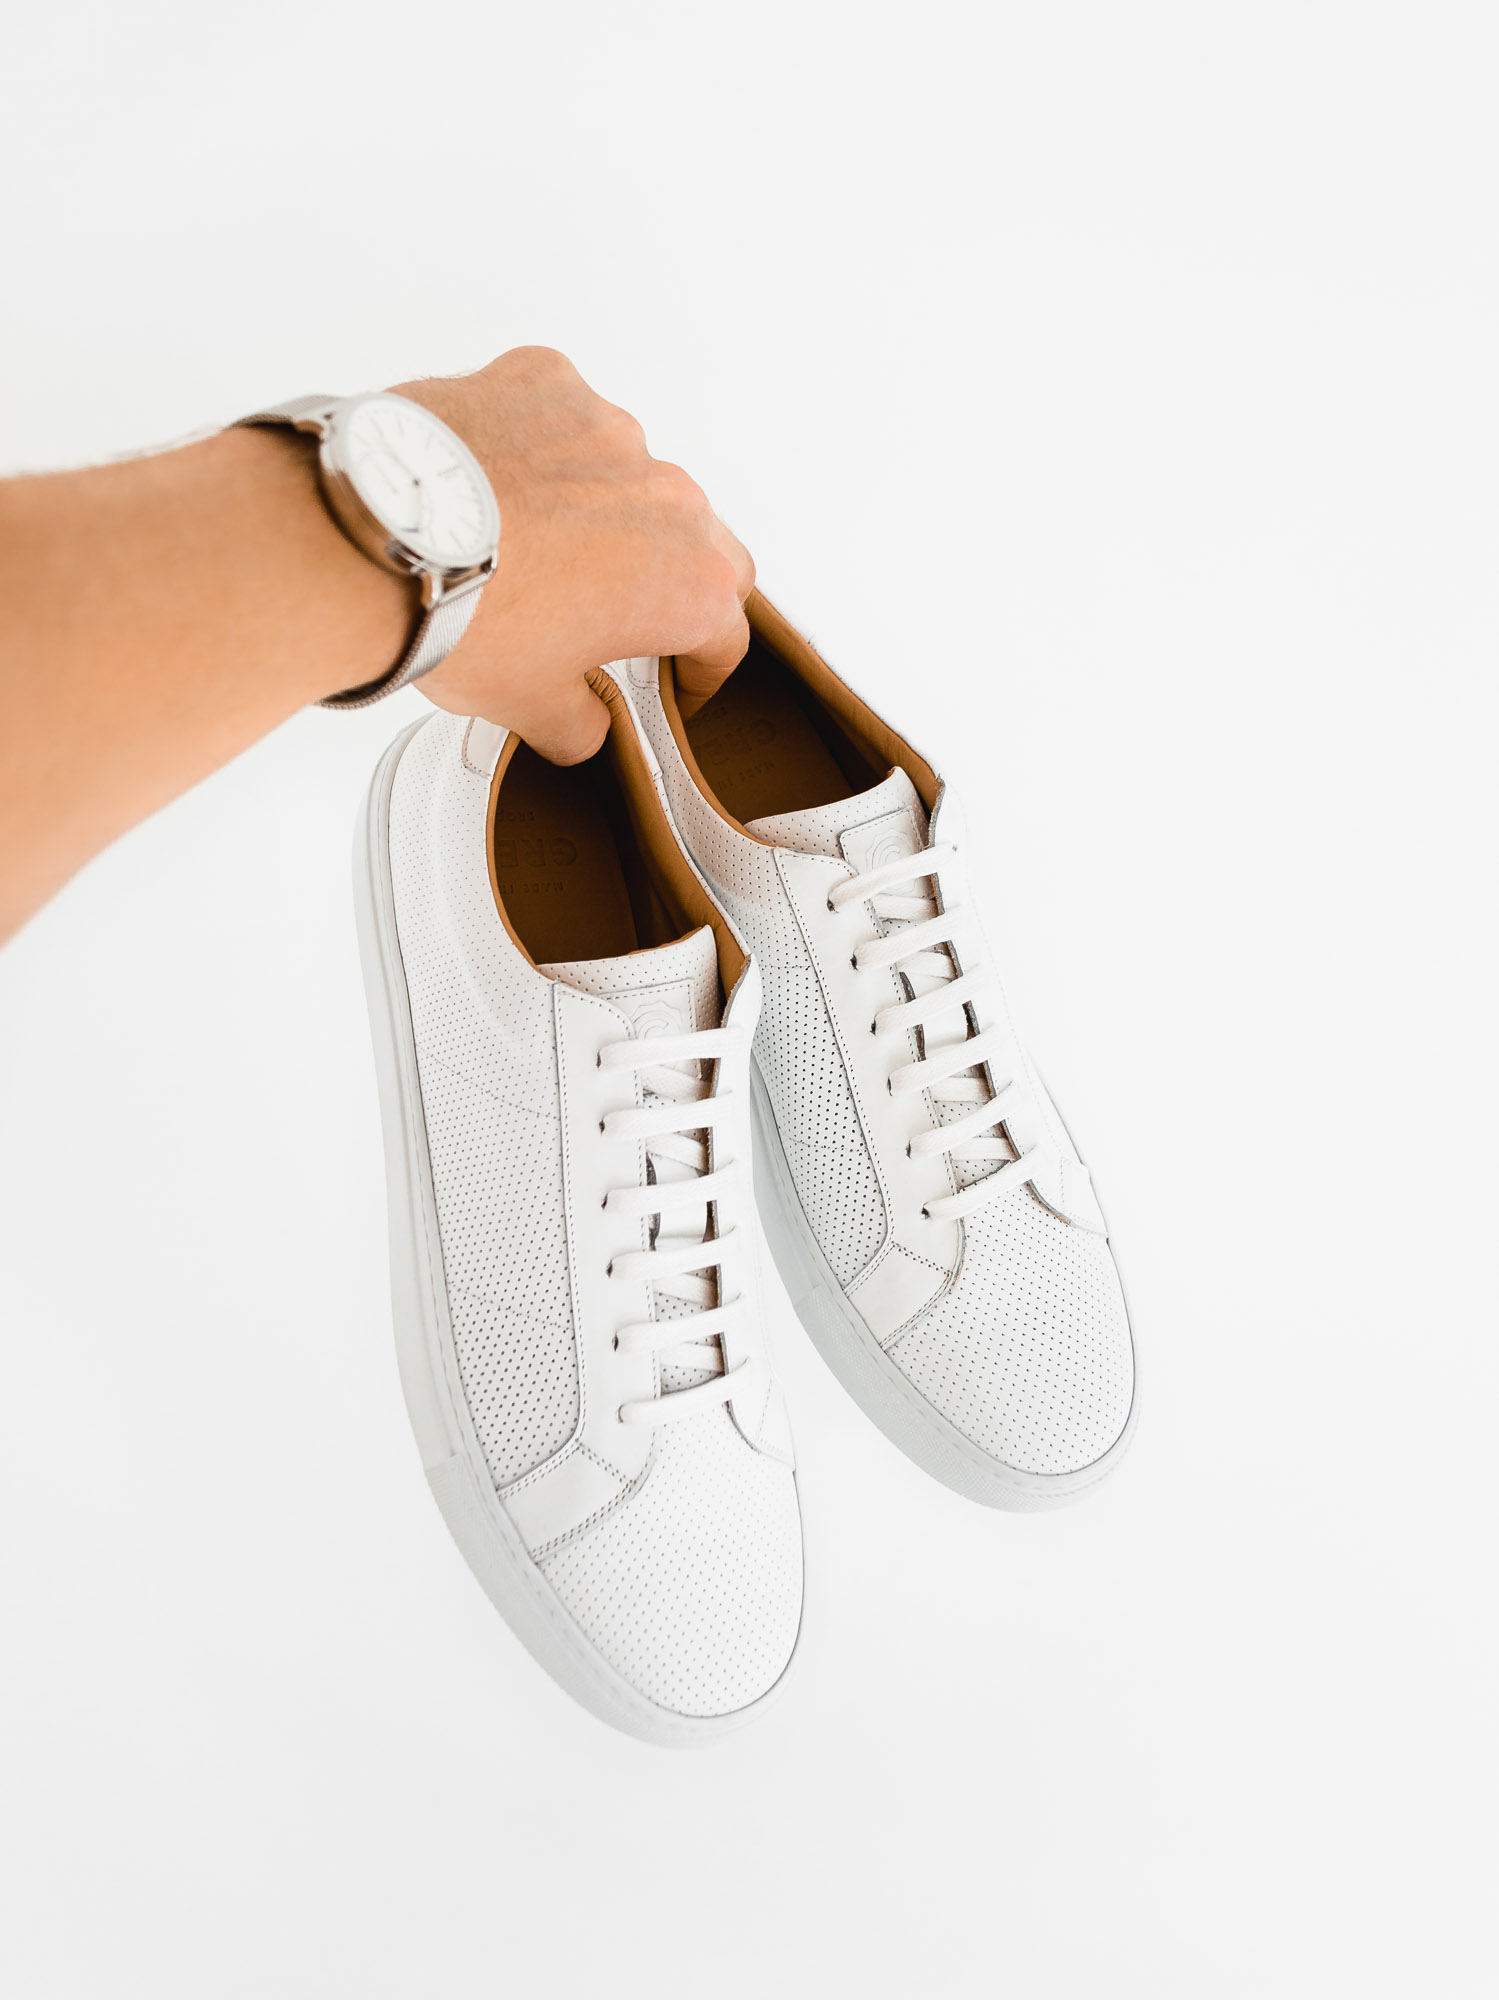 greats brand royale blanco perforated